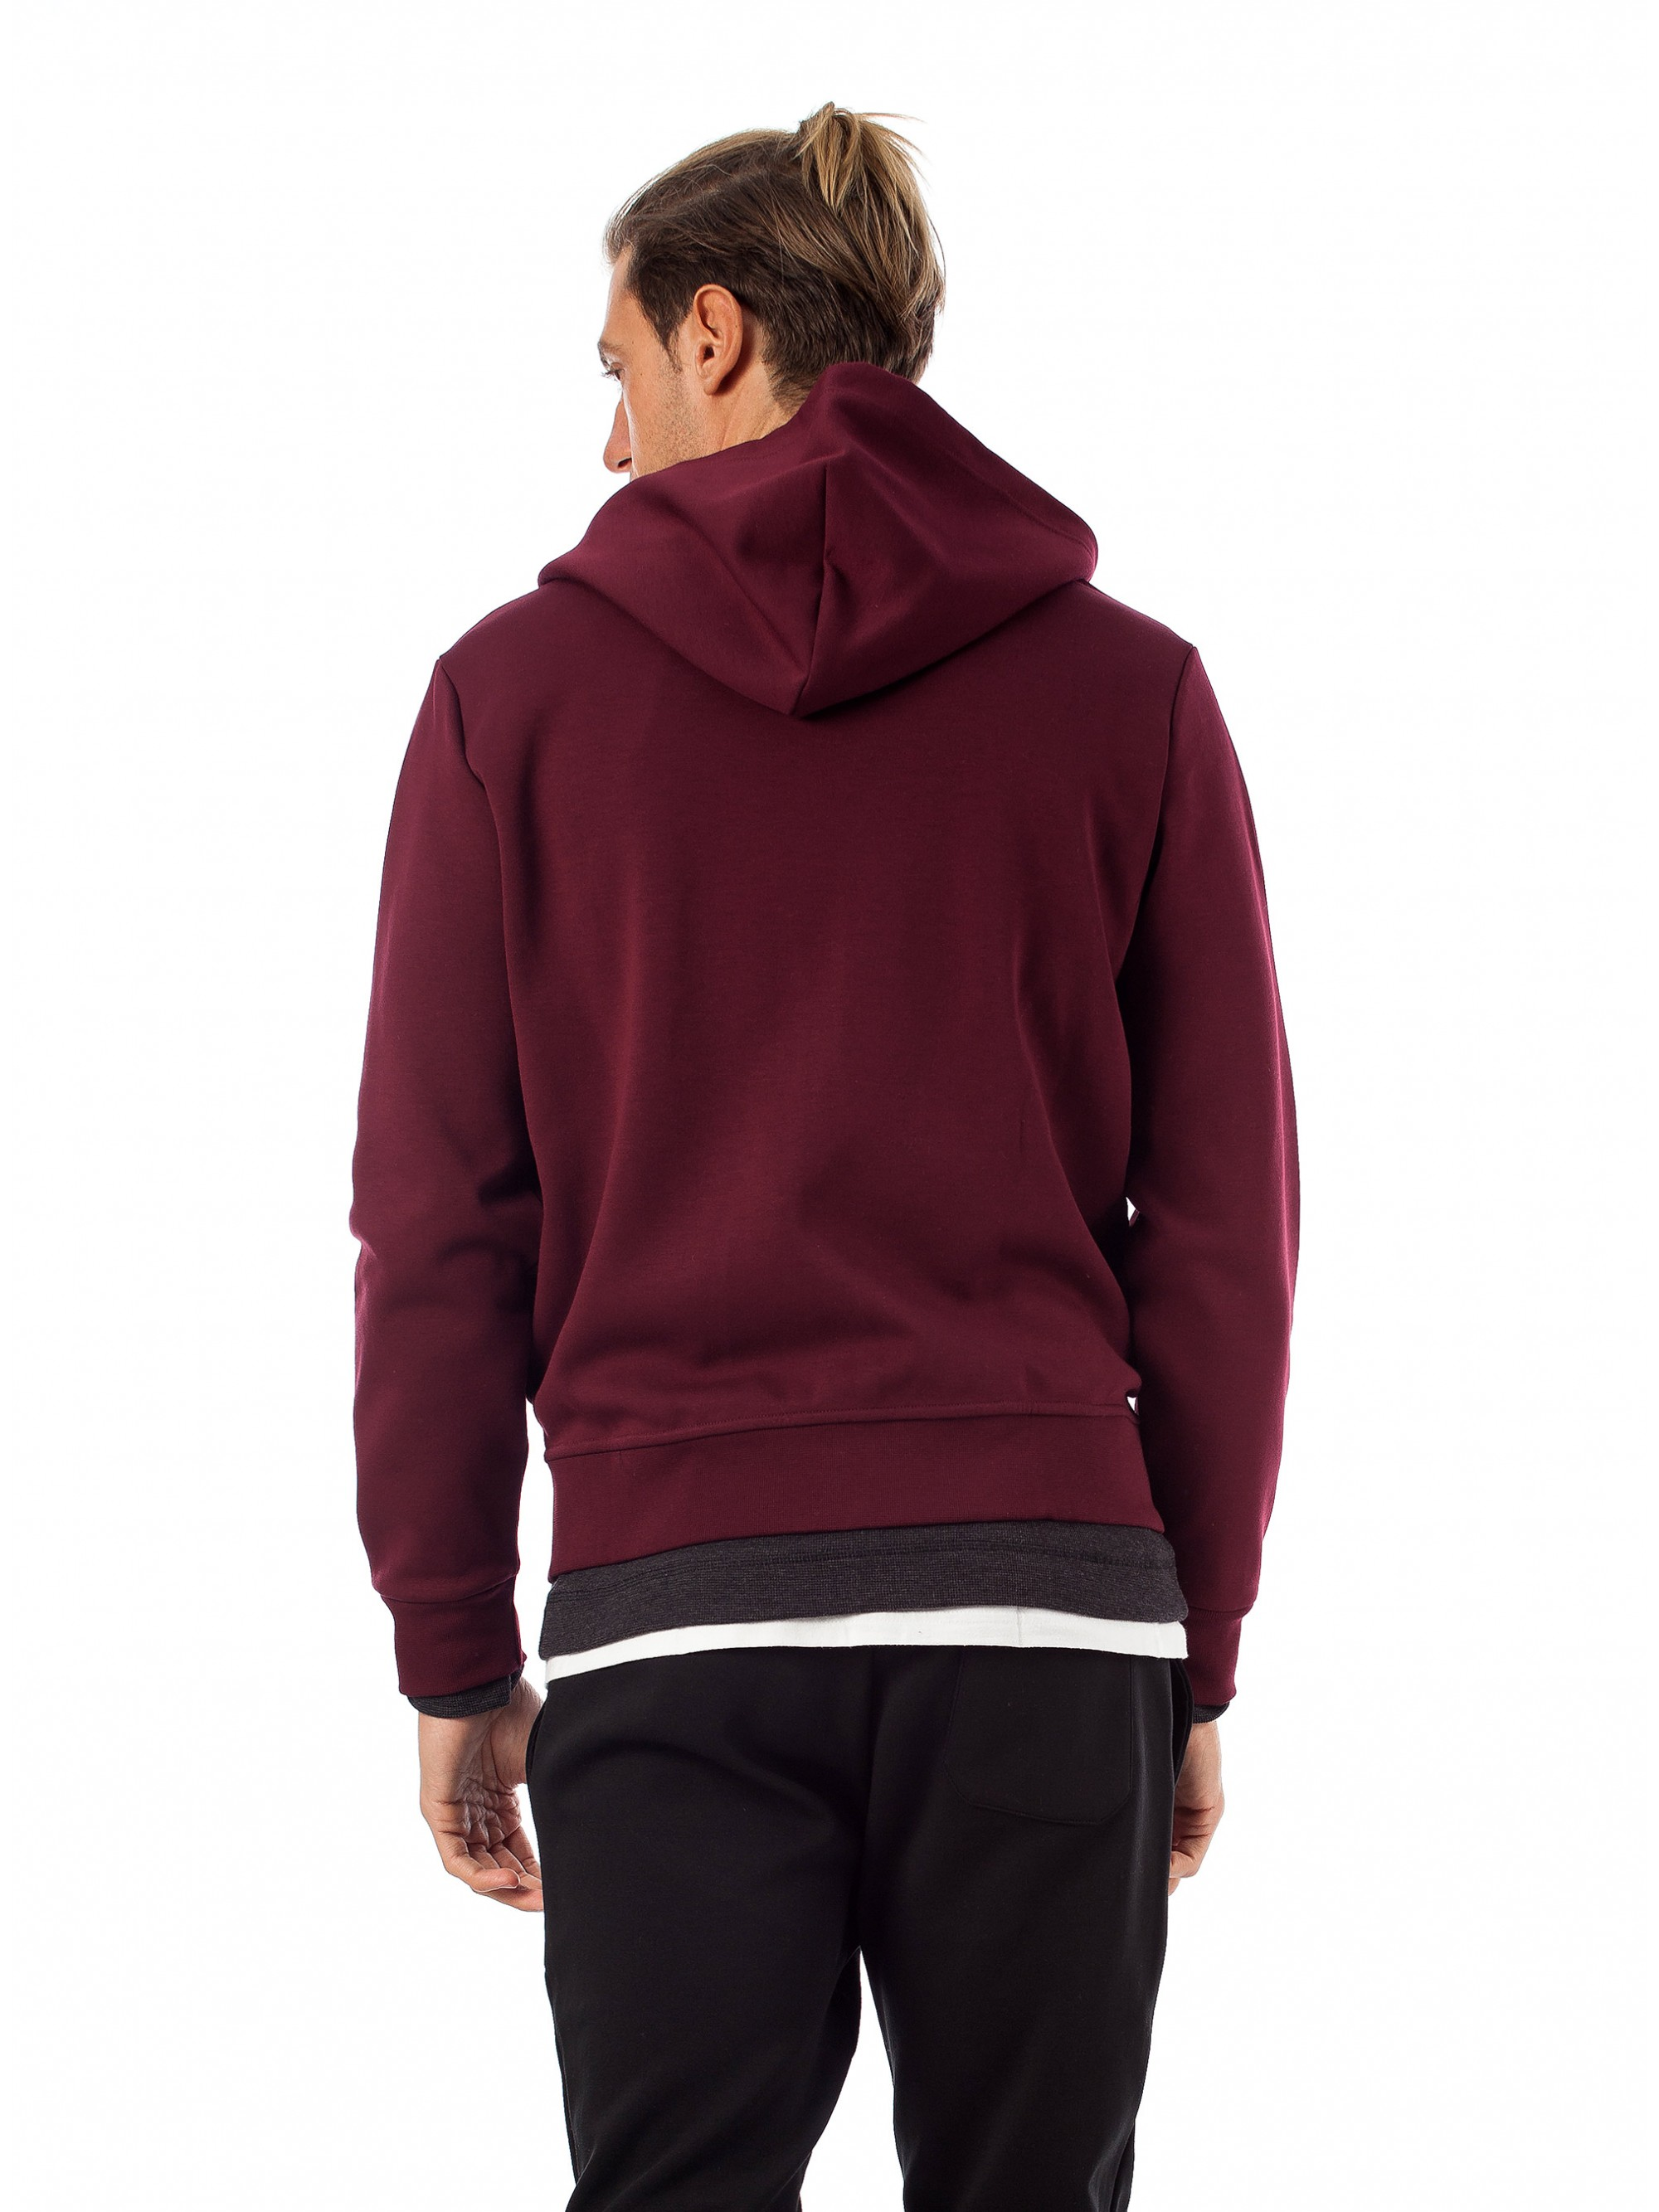 a33e8a72f741d Home · Fall-Winter 2018-19  Polo Ralph Lauren Zip Hoodie-Bordeaux. Tap to  expand · Tap to expand · Tap to expand · Tap to expand · Tap to expand